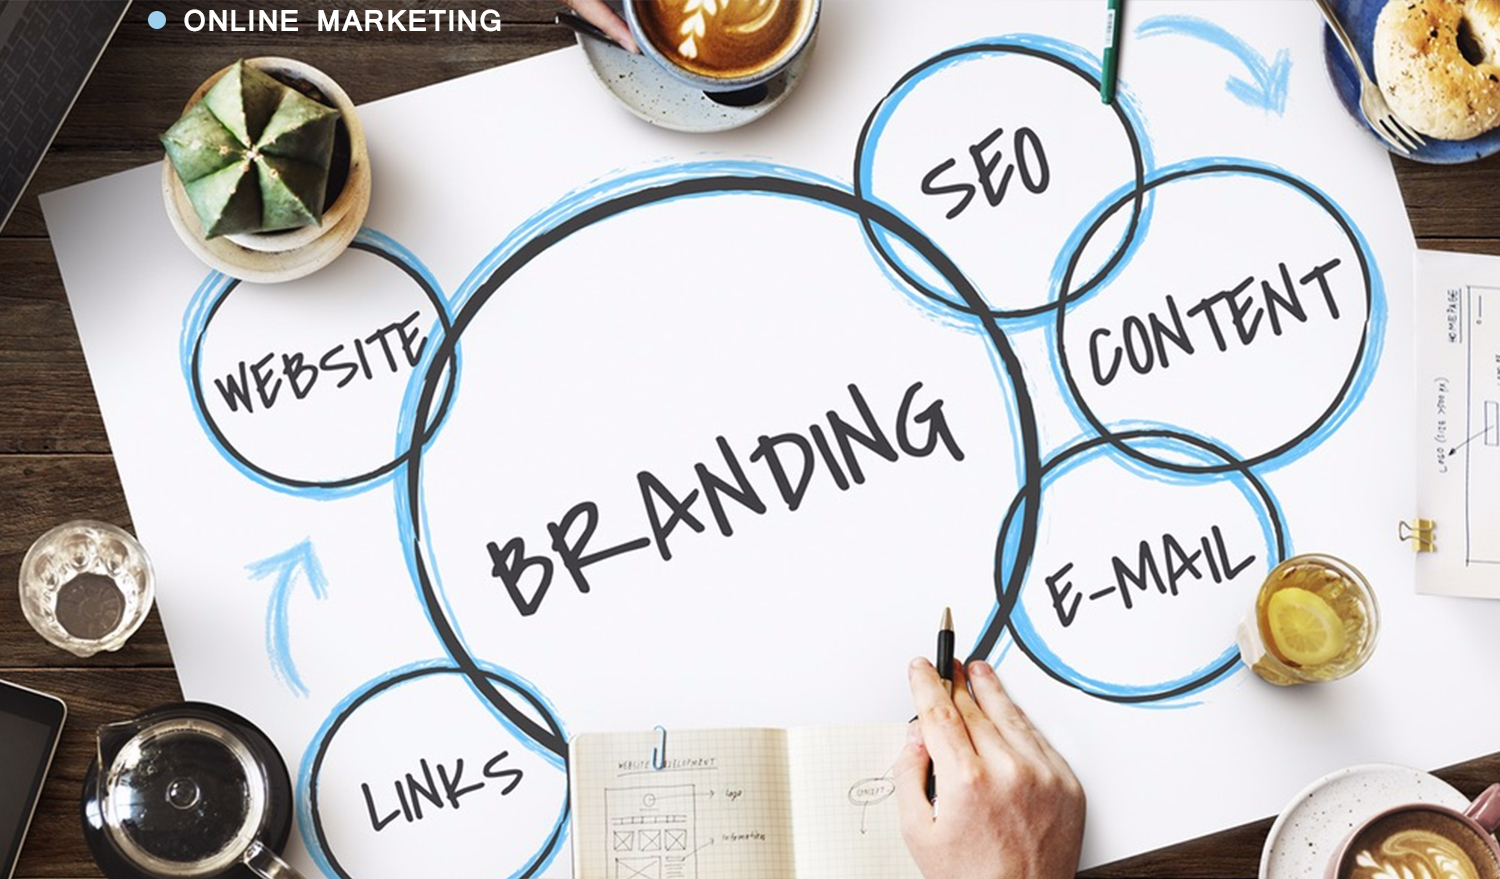 online marketing – a business for creative people